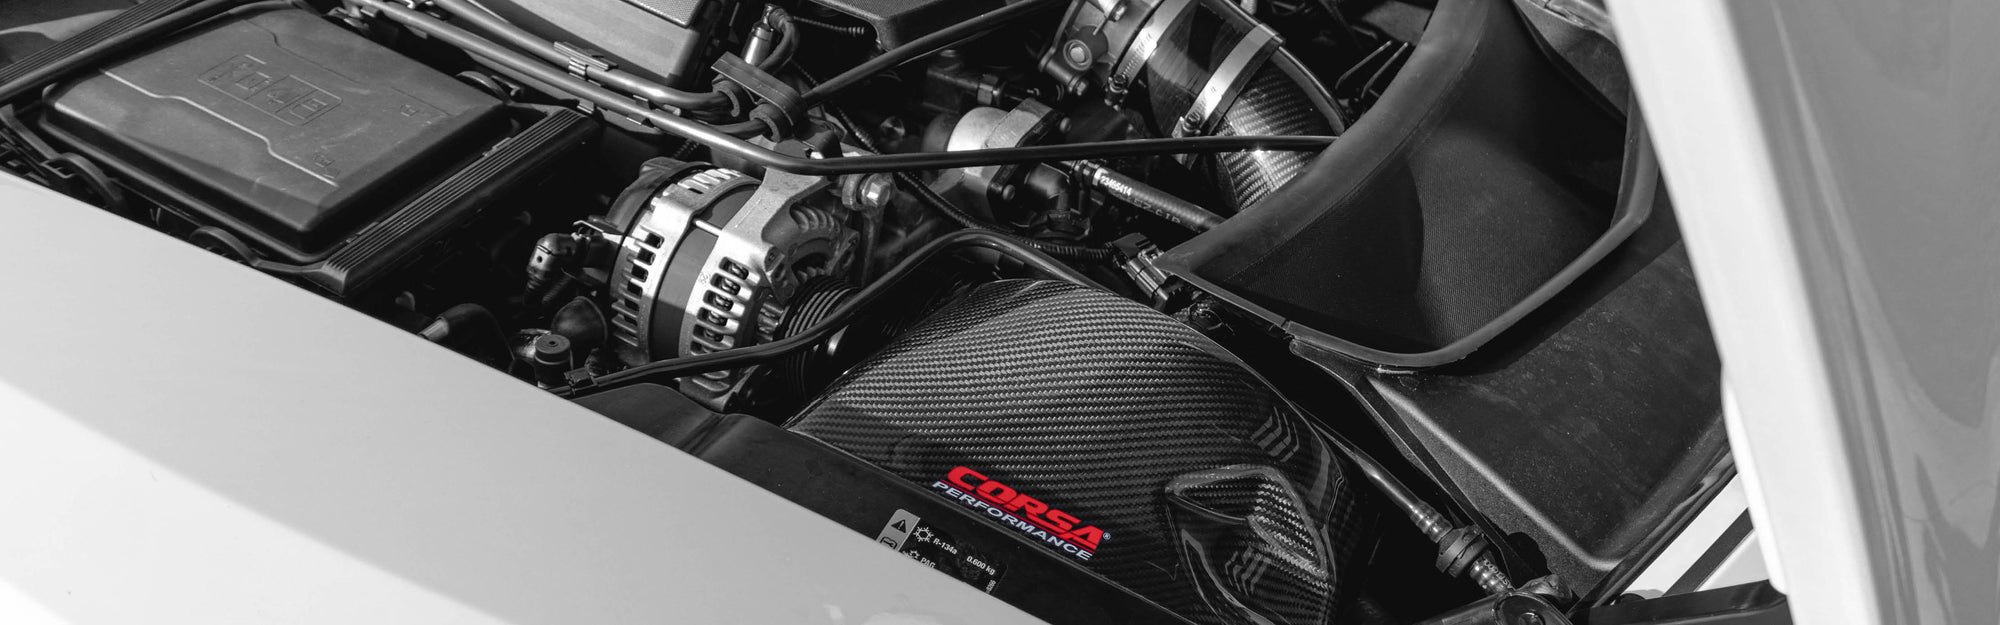 Now Shipping Carbon Fiber Cold Air Intake for Corvette C7 banner image